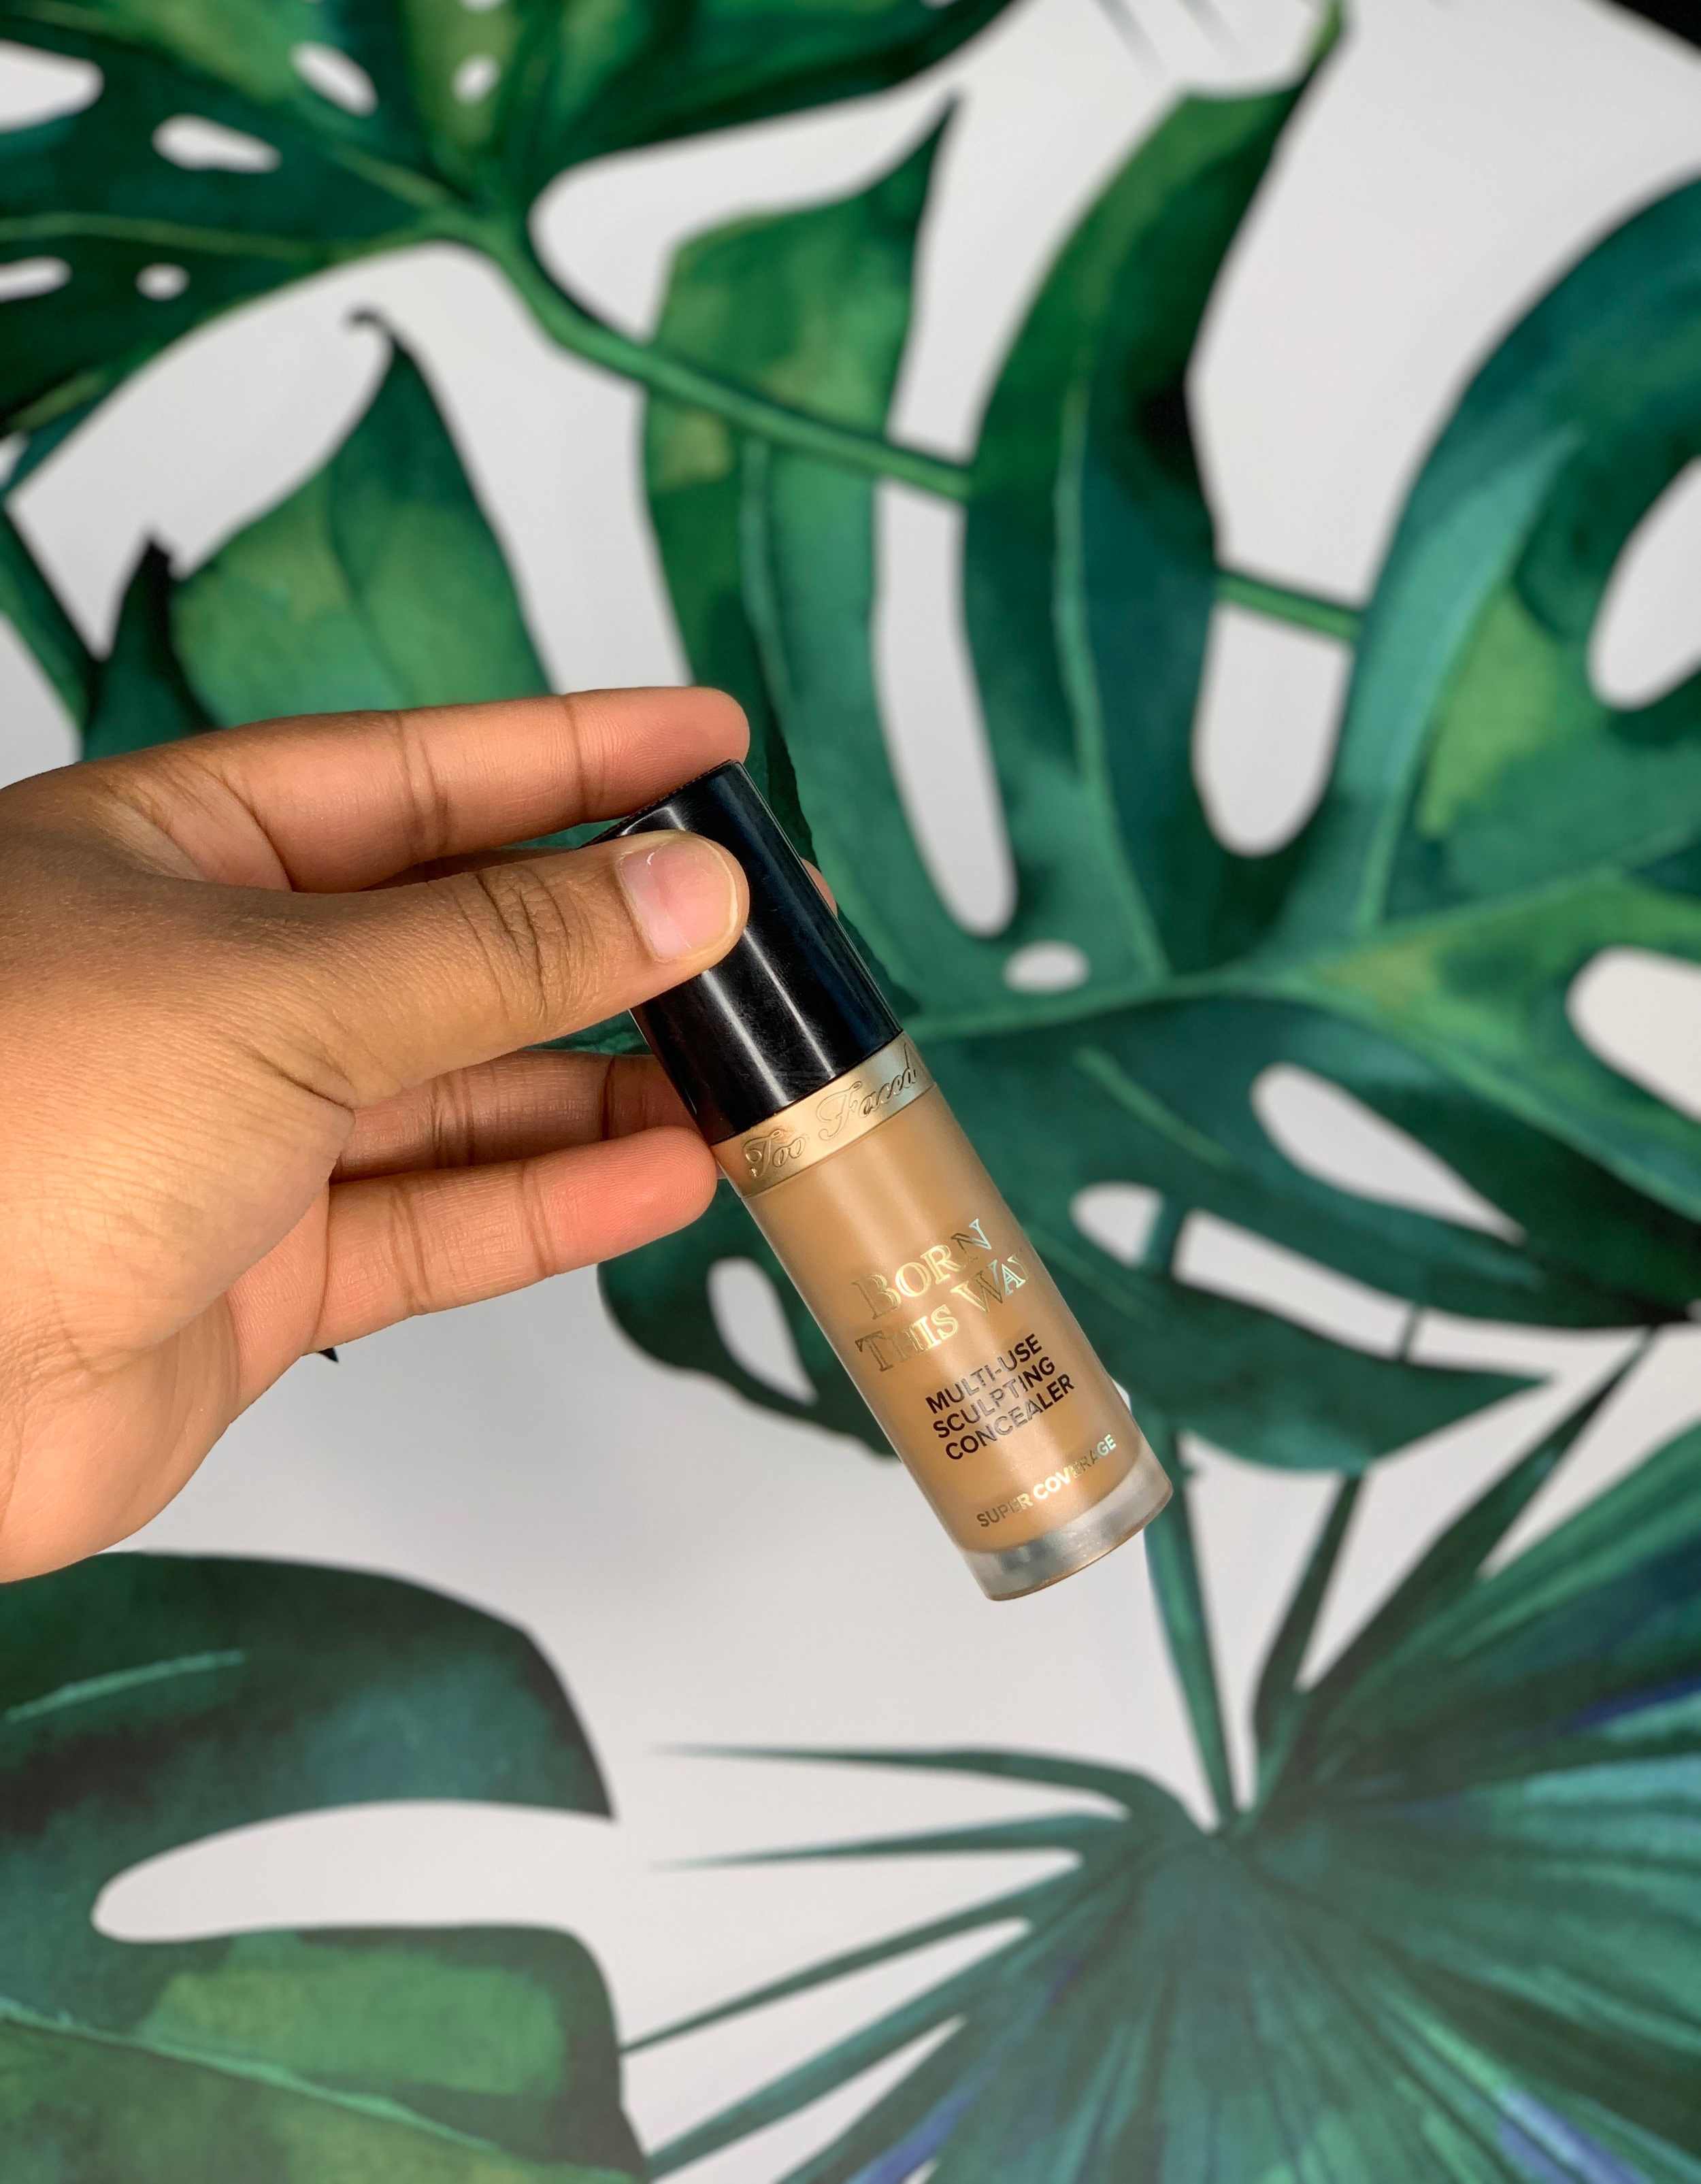 "Concealer - When the Too Faced Concealer launched, I heard many people talk highly of it and since I was ready to try something new, I purchased it in December 2018 and I immediately fell in love with it. The shade that I use ""warm sand"" is perfect and the formula!! You guys!! Too Faced has won my love with their foundation and concealer. It's a DUO!!!"